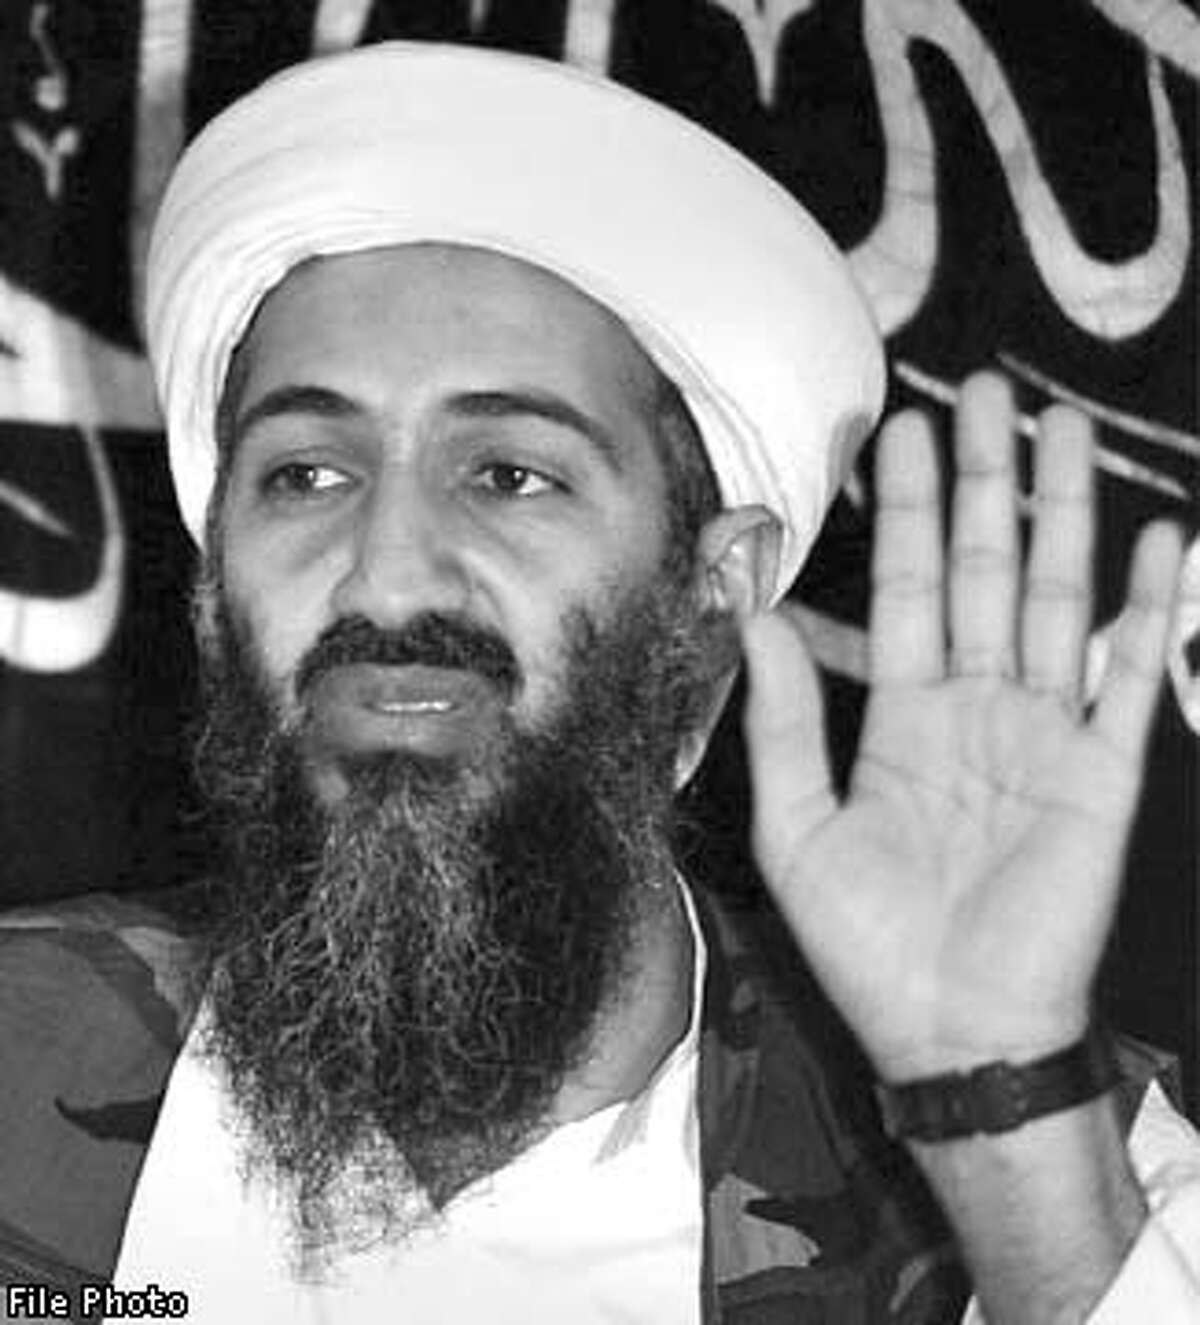 Saudi-exile Osama bin-Laden is seen addressing a news conference in Afghanistan, where he and his organization are based, in this May 26, 1998 file photo. The U.S. on Thursday started to gear up for what it called the first war of the 21st century, naming bin Laden as a suspect in twin terror attacks that stunned New York and Washington. The leader of Afghanistan's ruling Taliban movement on Friday defended bin Laden against accusations he mastermind the devastating attacks. REUTERS/Str/File photo